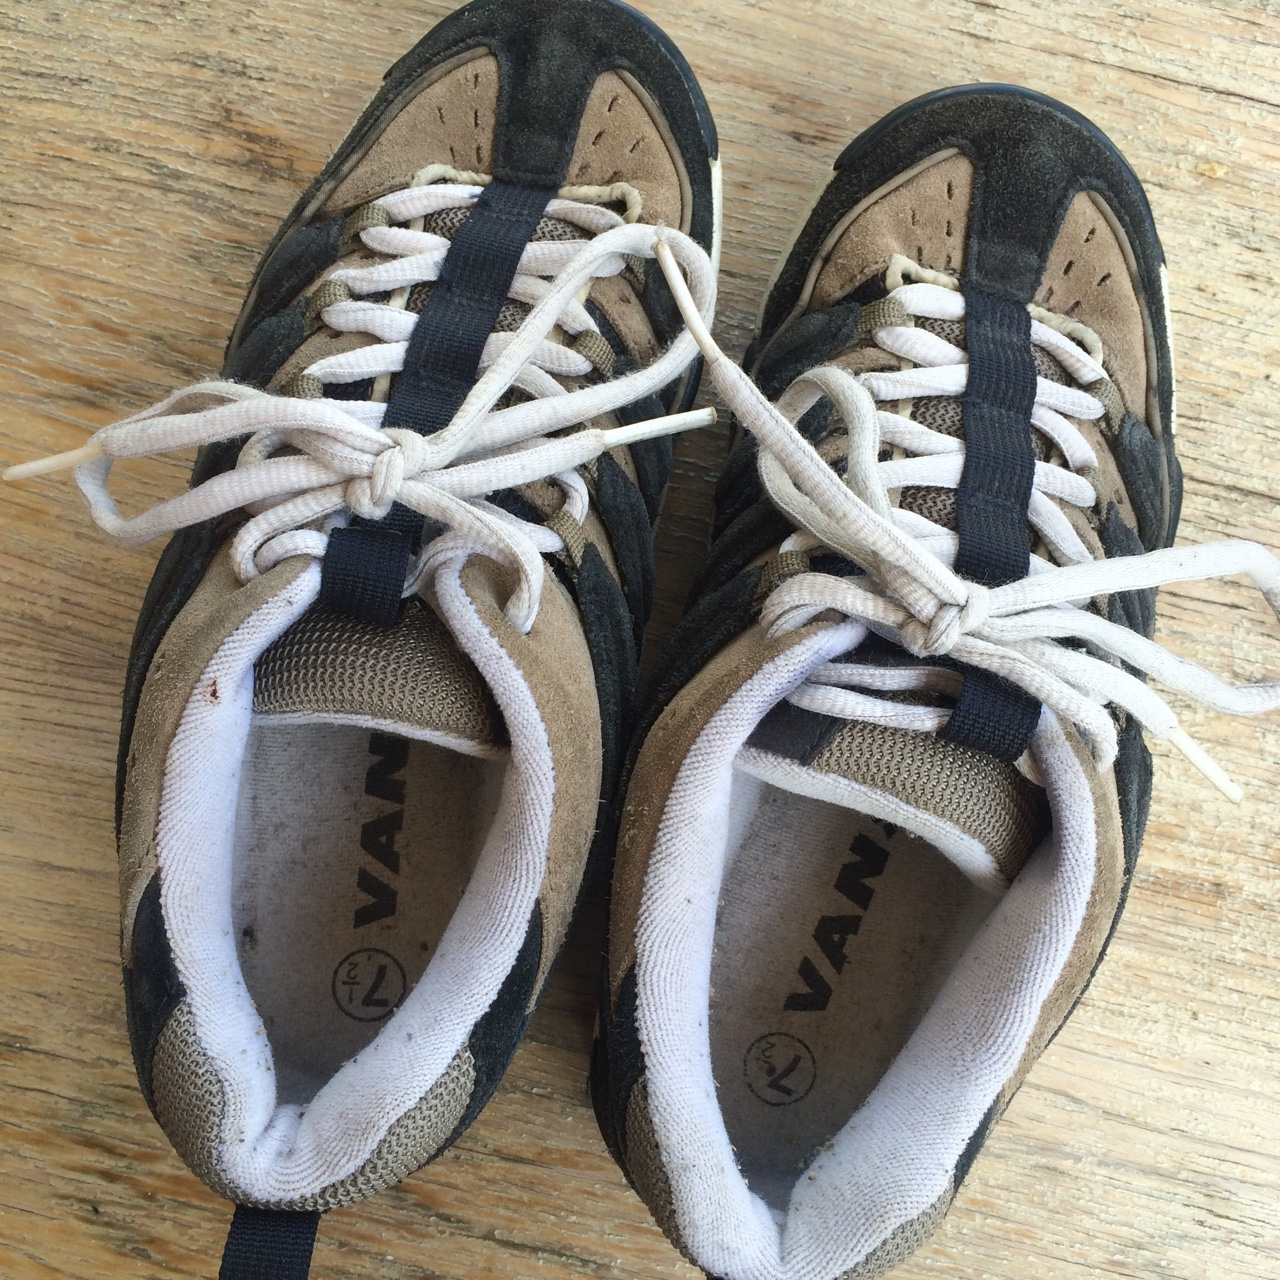 Vintage Vans shoes. Extremely rare incredible Depop